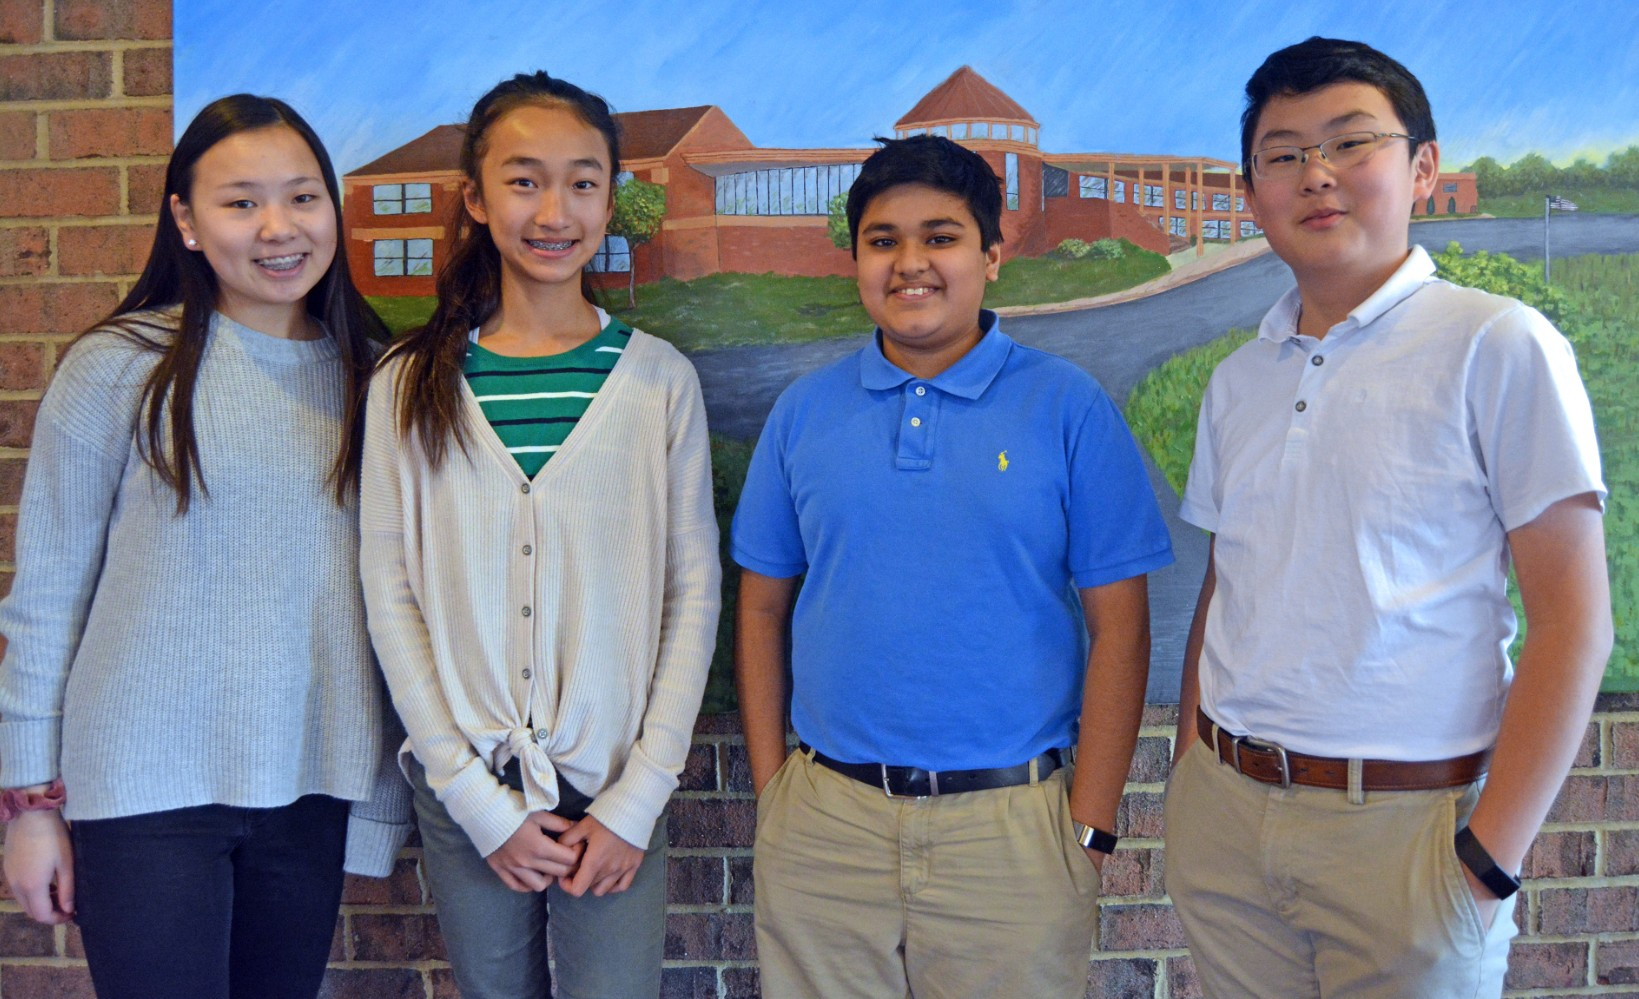 Group of 4 students to represent Indy at All-State Band & Orchestra events